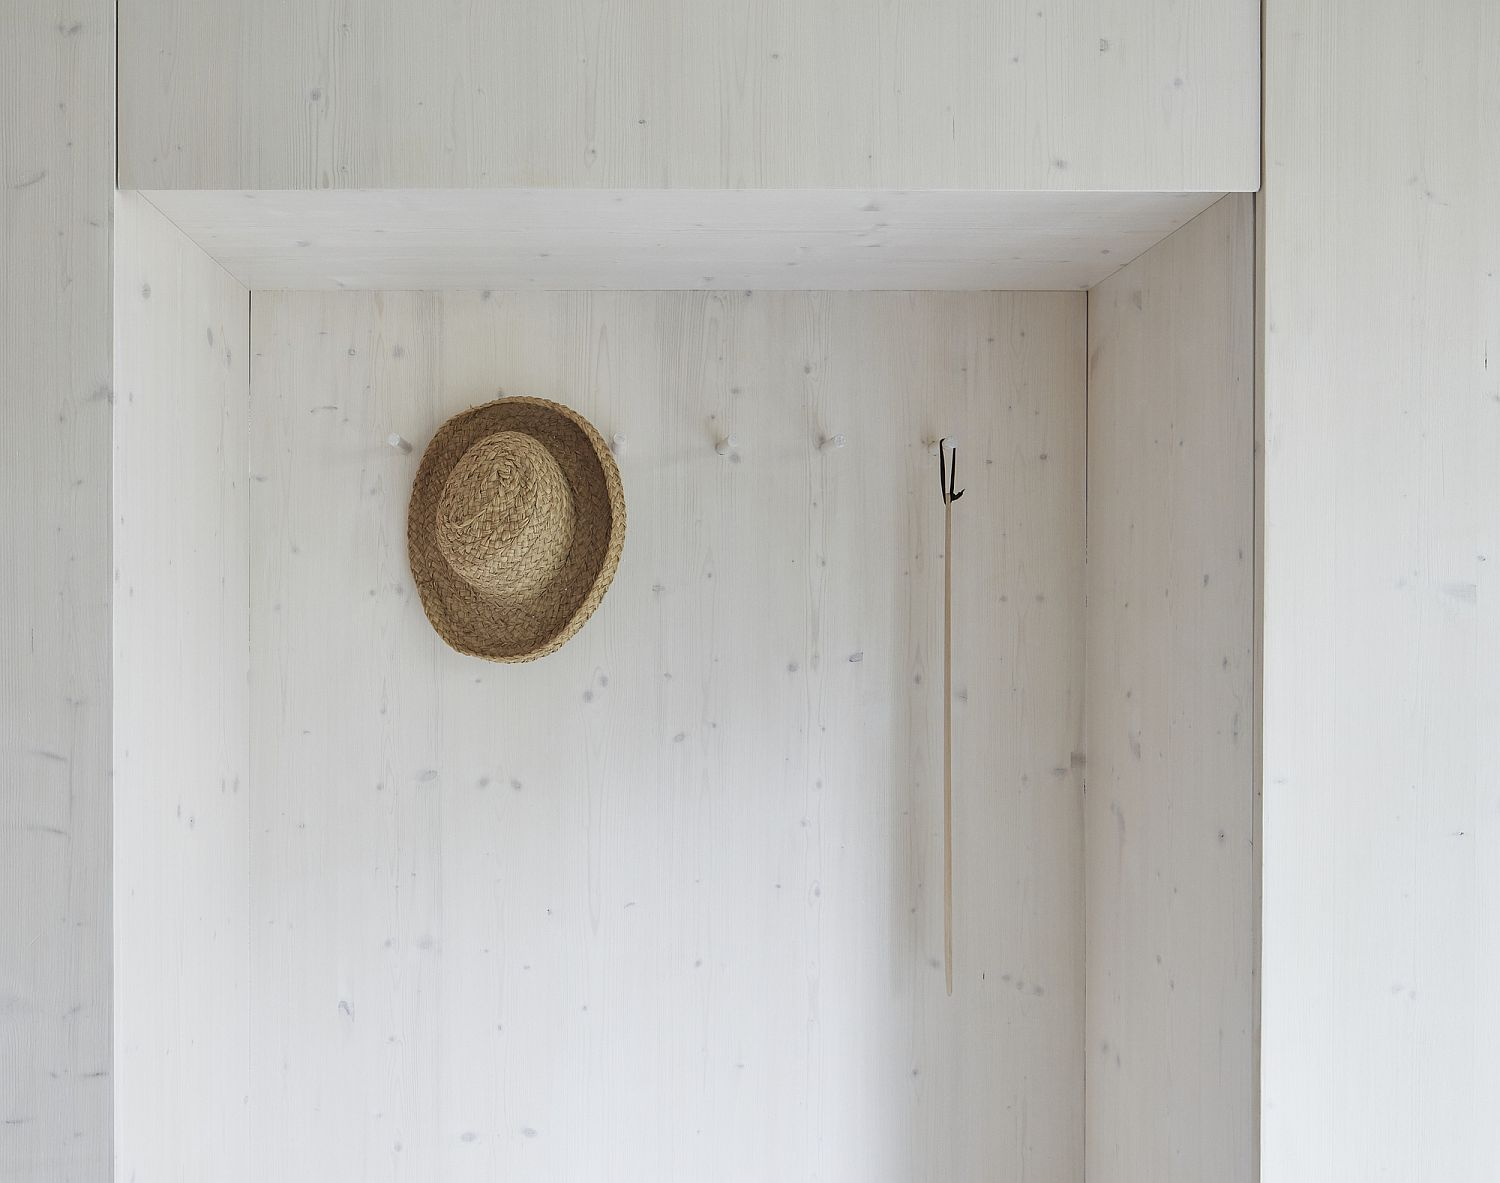 Simple and minimal entry room deisgn idea